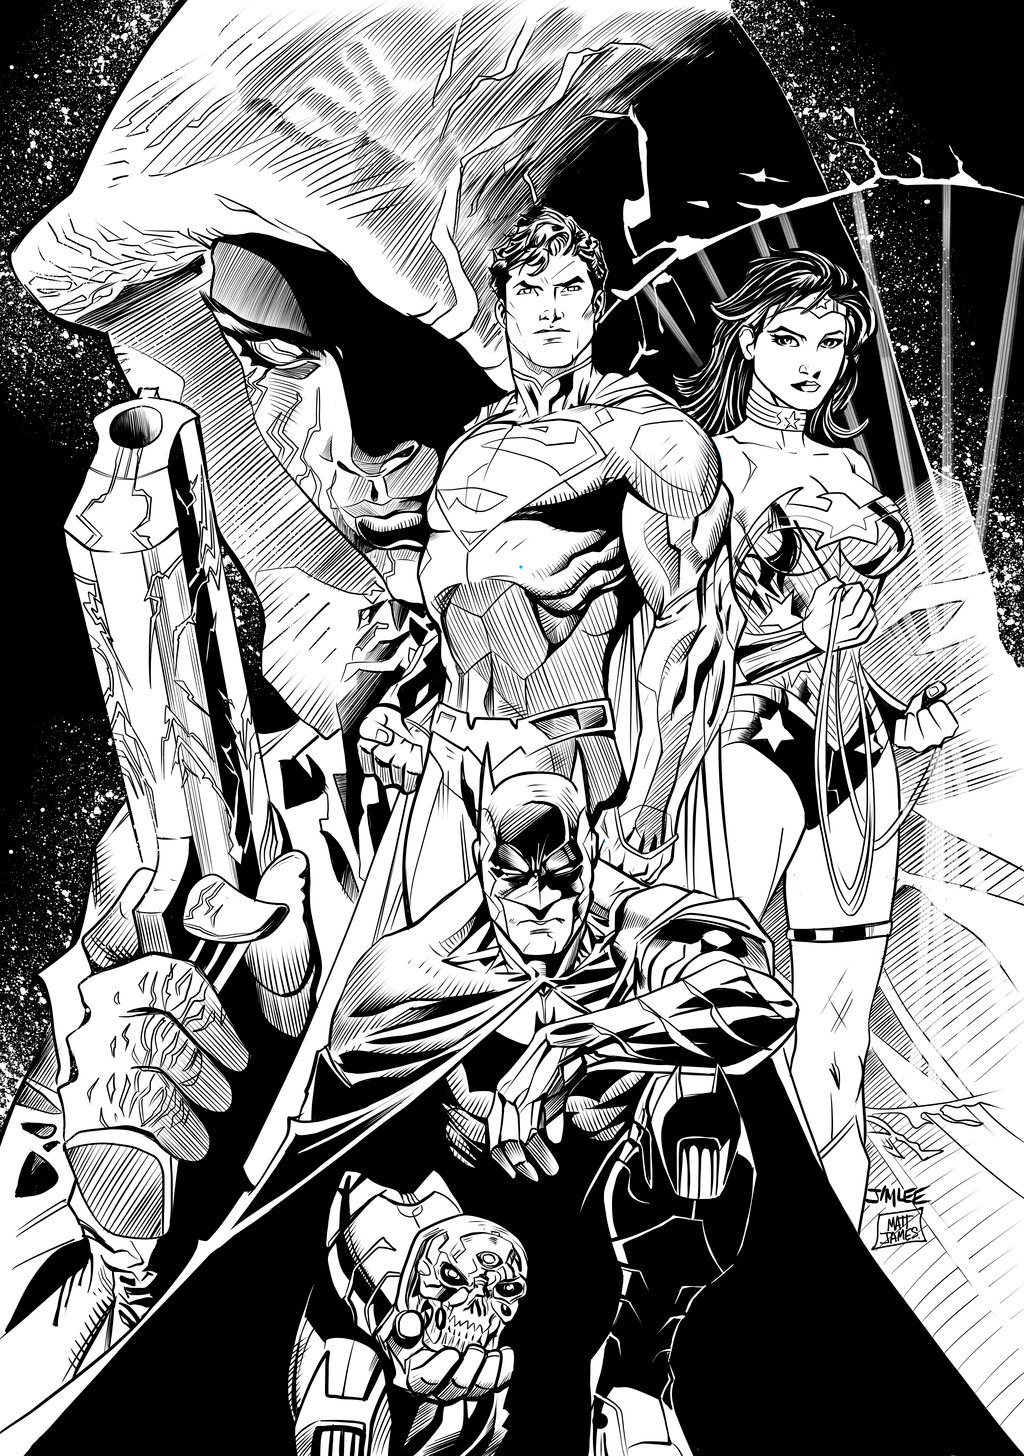 Matt james new 52 fcbd edition by mattjamescomicarts da1lquw